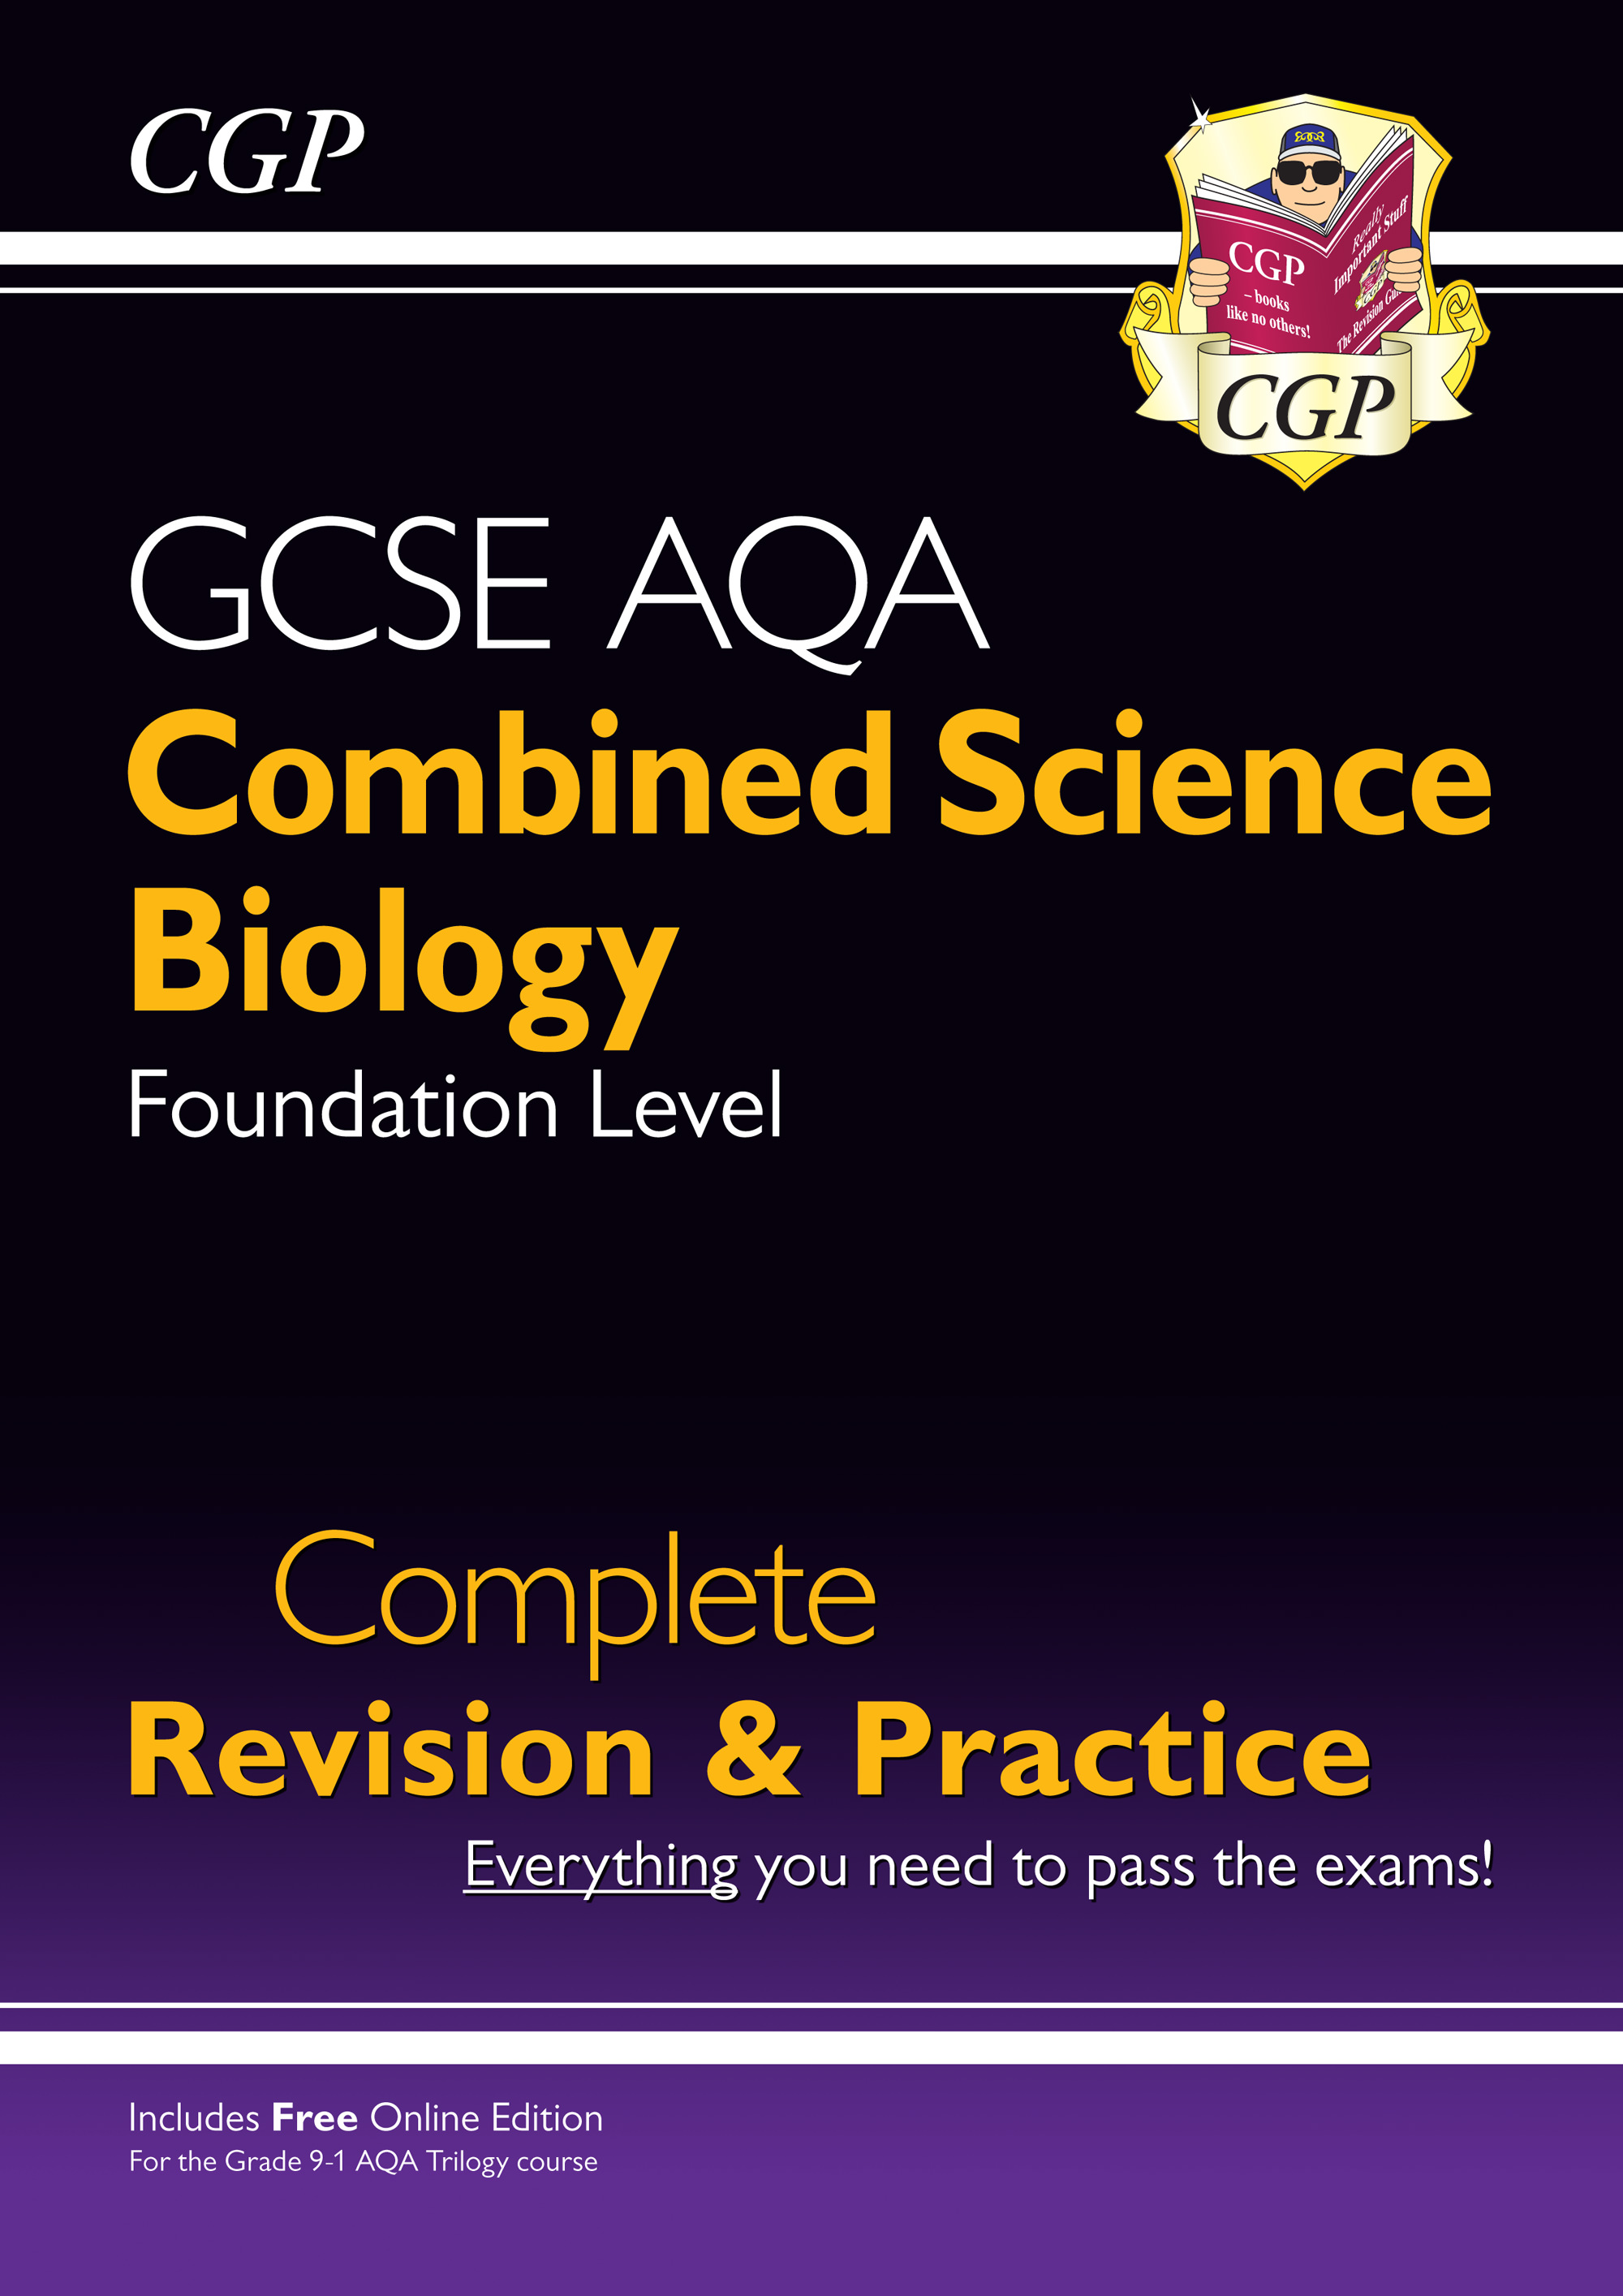 SCBAFS41 - New 9-1 GCSE Combined Science: Biology AQA Foundation Complete Revision & Practice with O